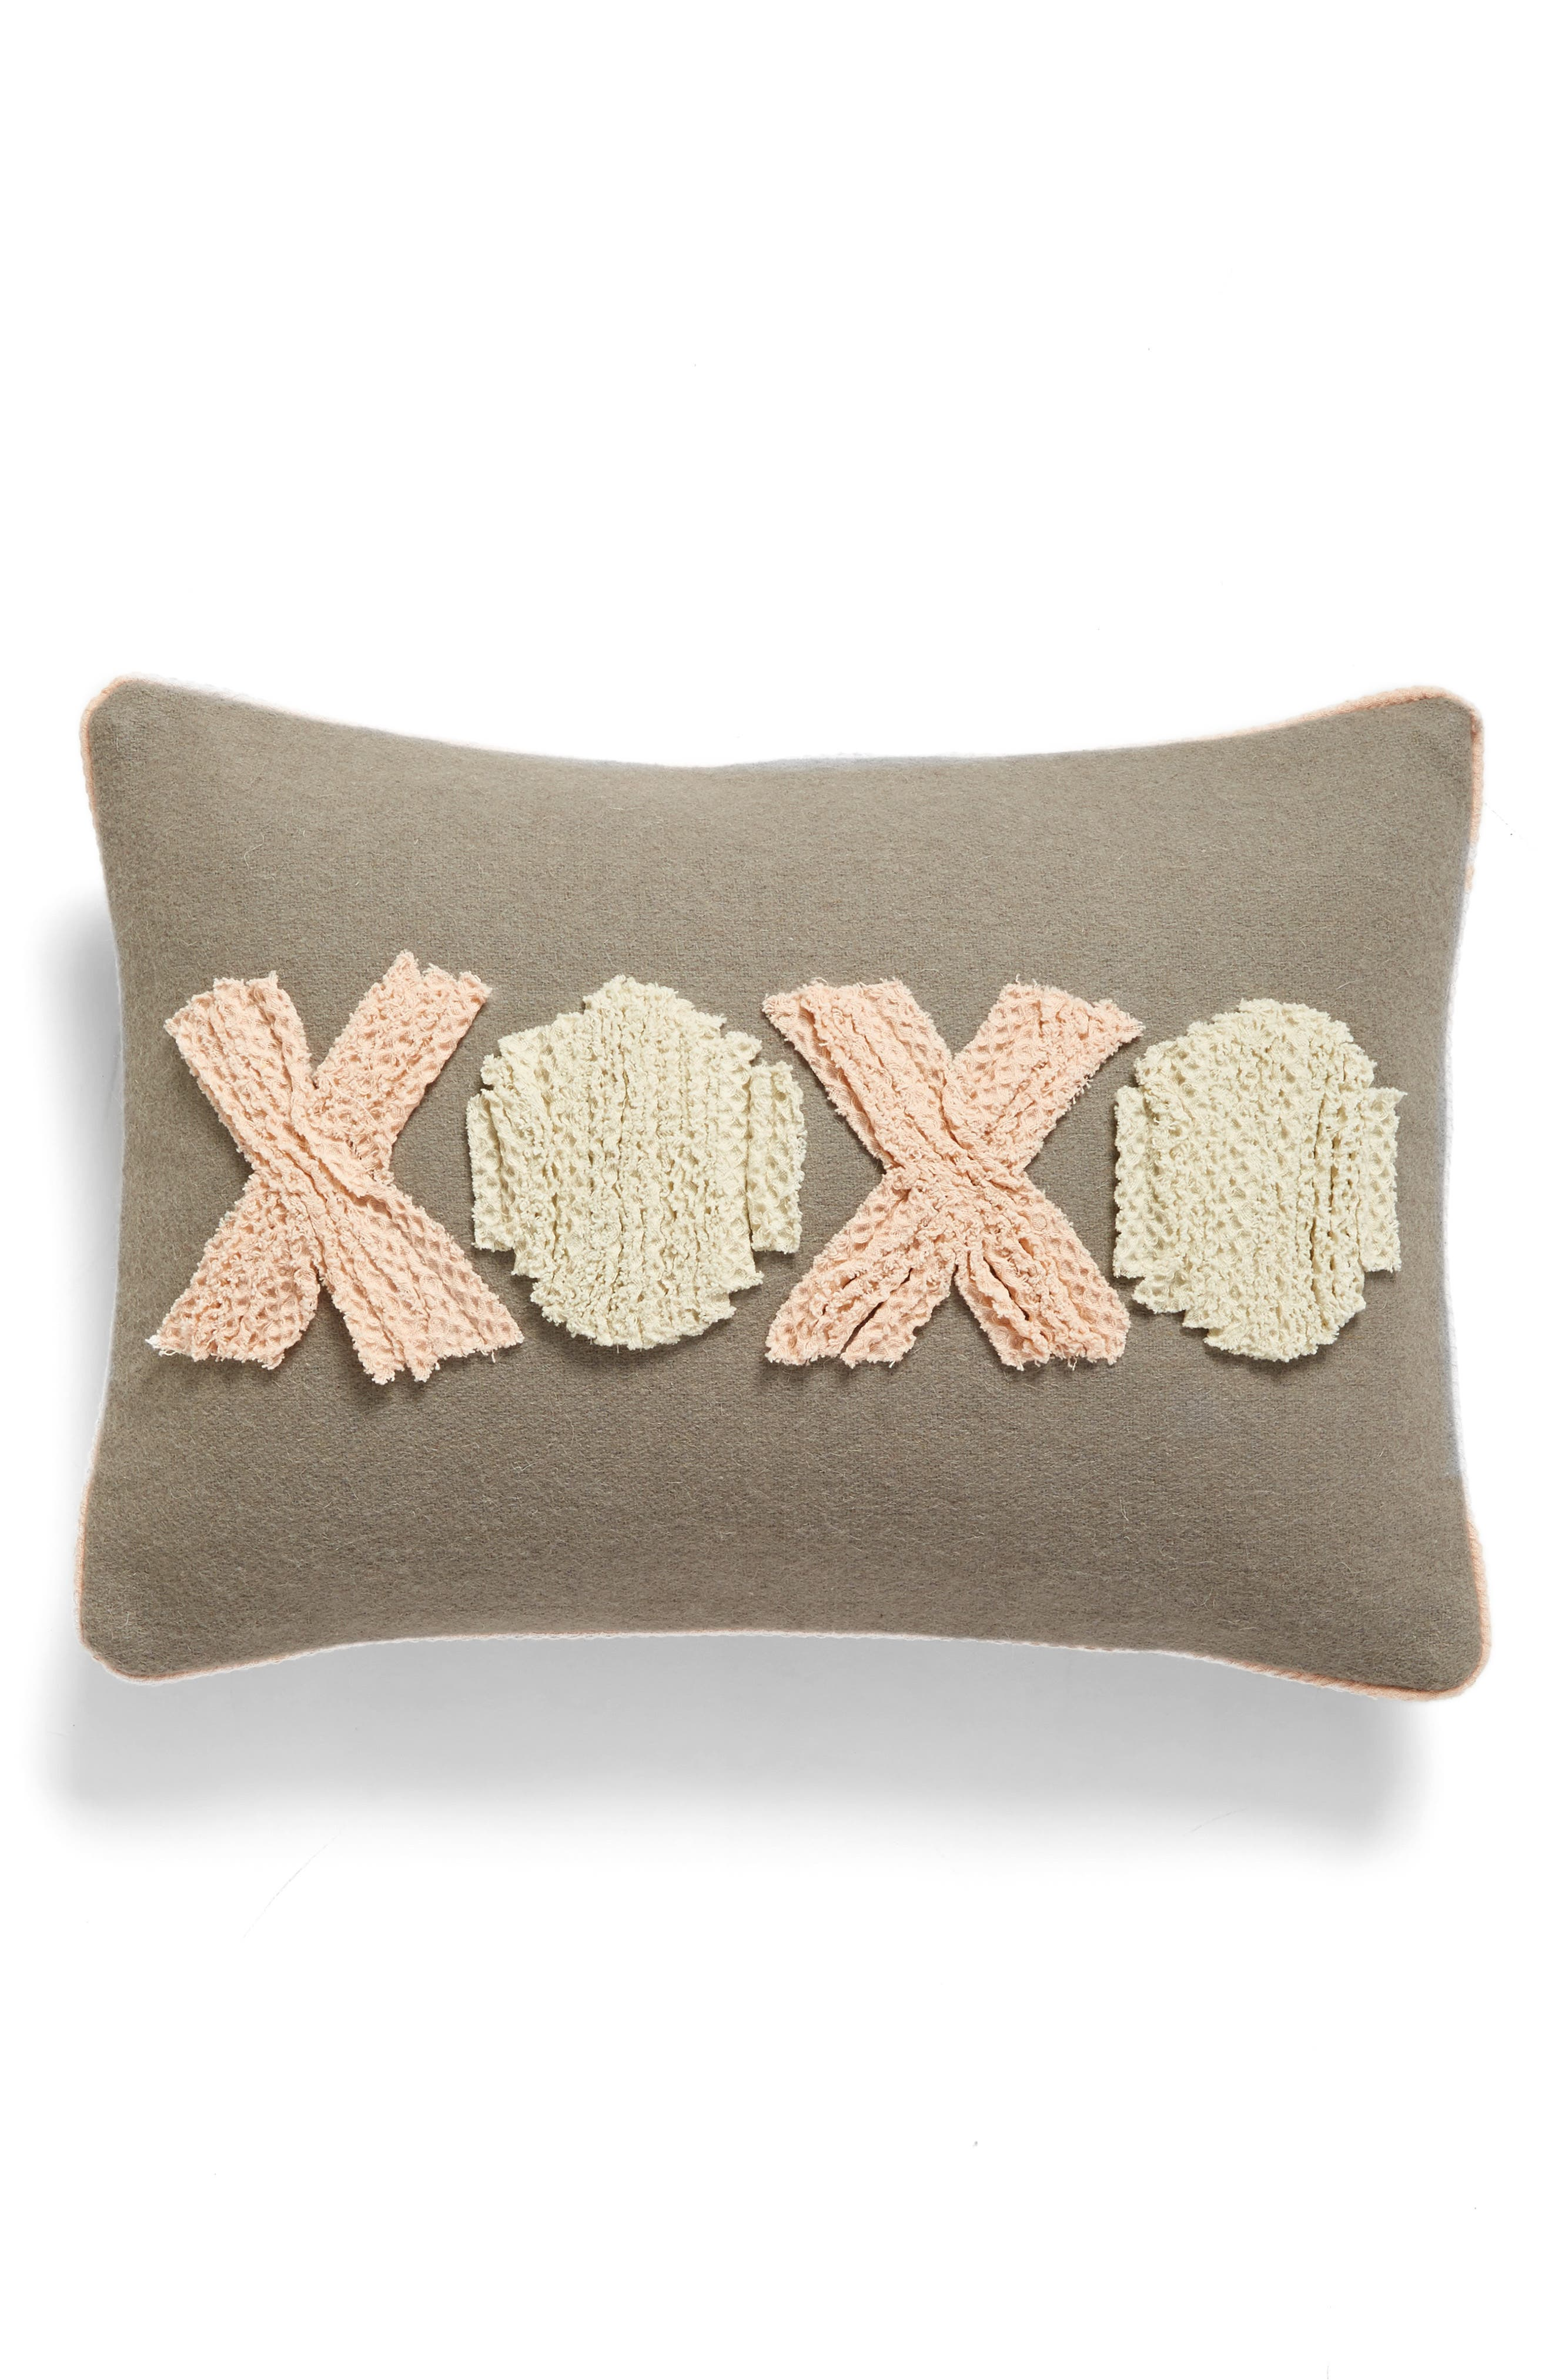 NORDSTROM AT HOME,                             XOXO Accent Pillow,                             Main thumbnail 1, color,                             020